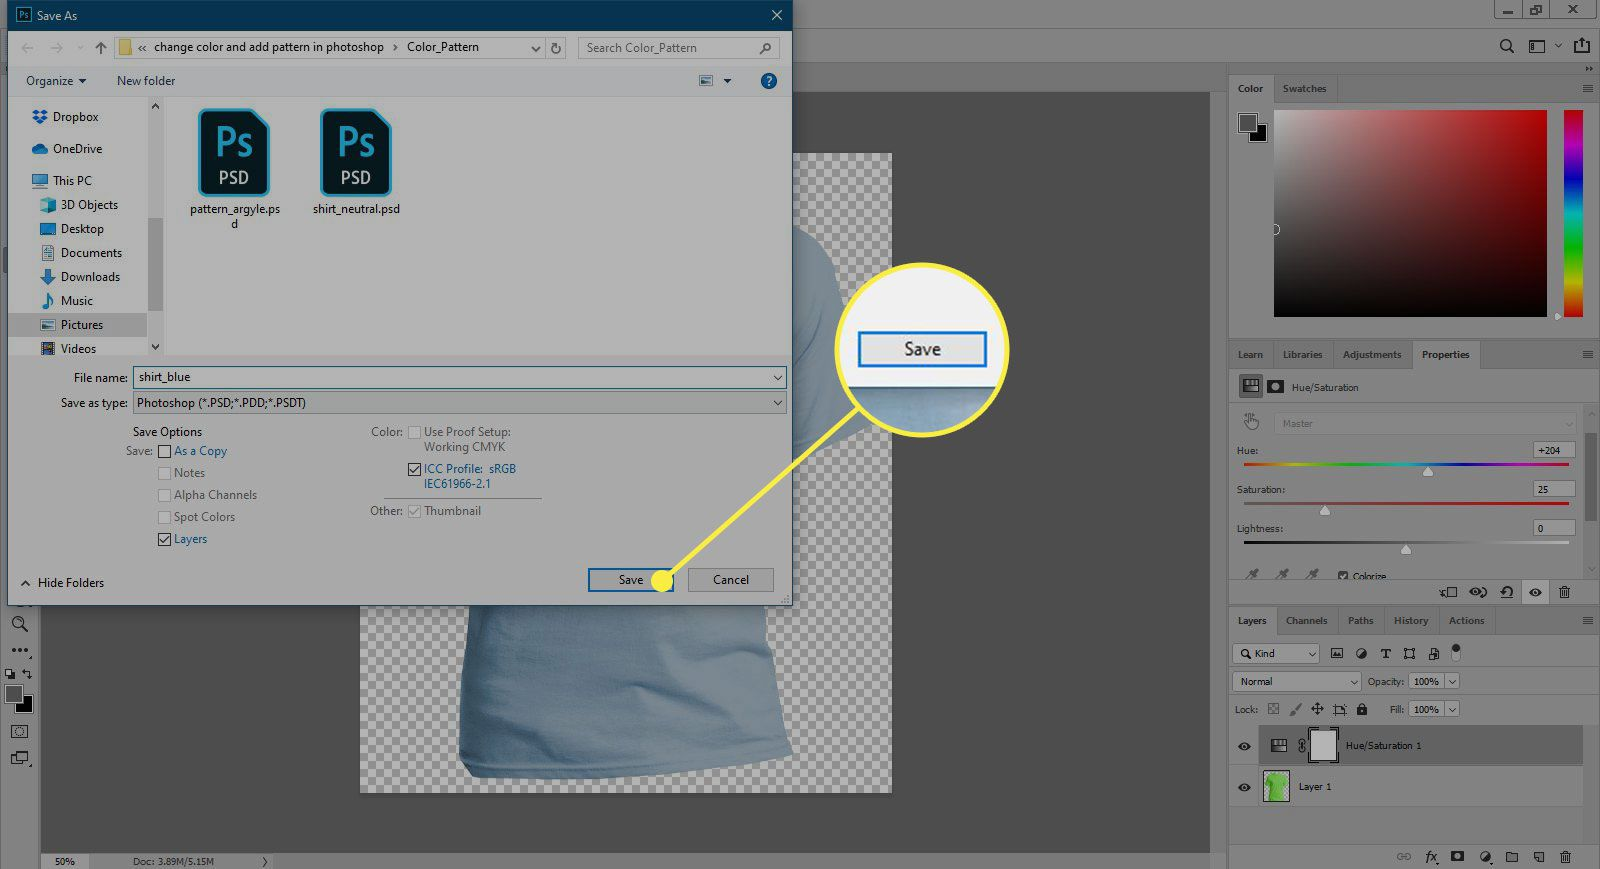 A screenshot of Photoshop's Save As window witht he save button highlighted